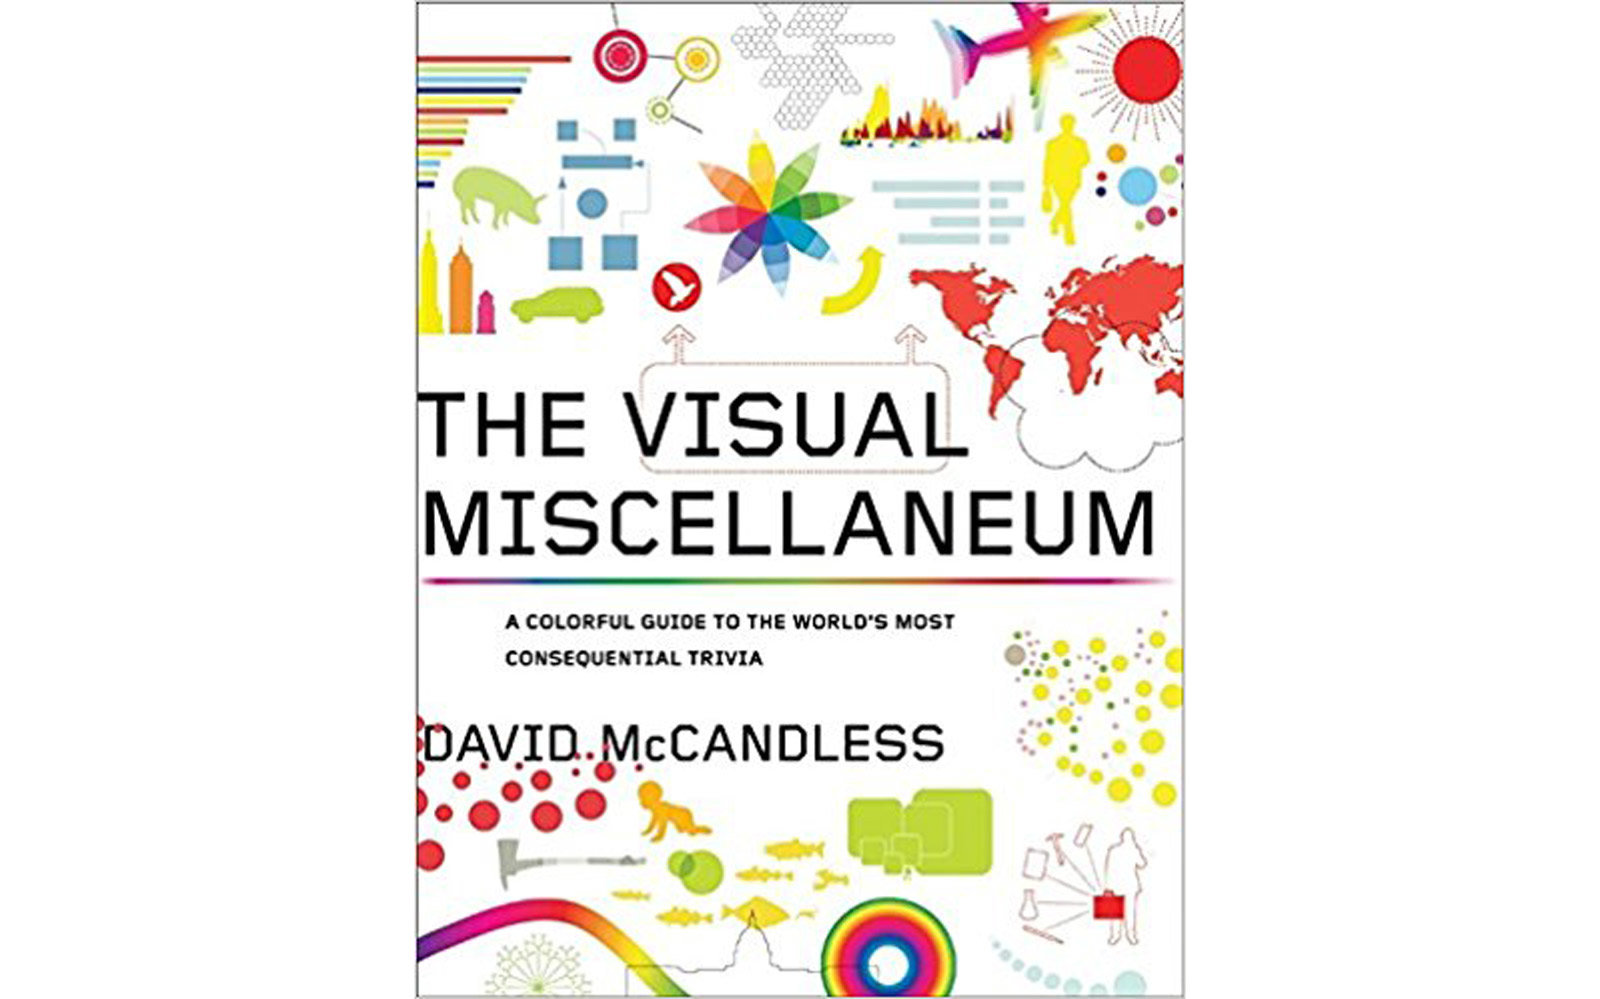 'The Visual Miscellaneum: A Colorful Guide to the World's Most Consequential Trivia' by David McCandless